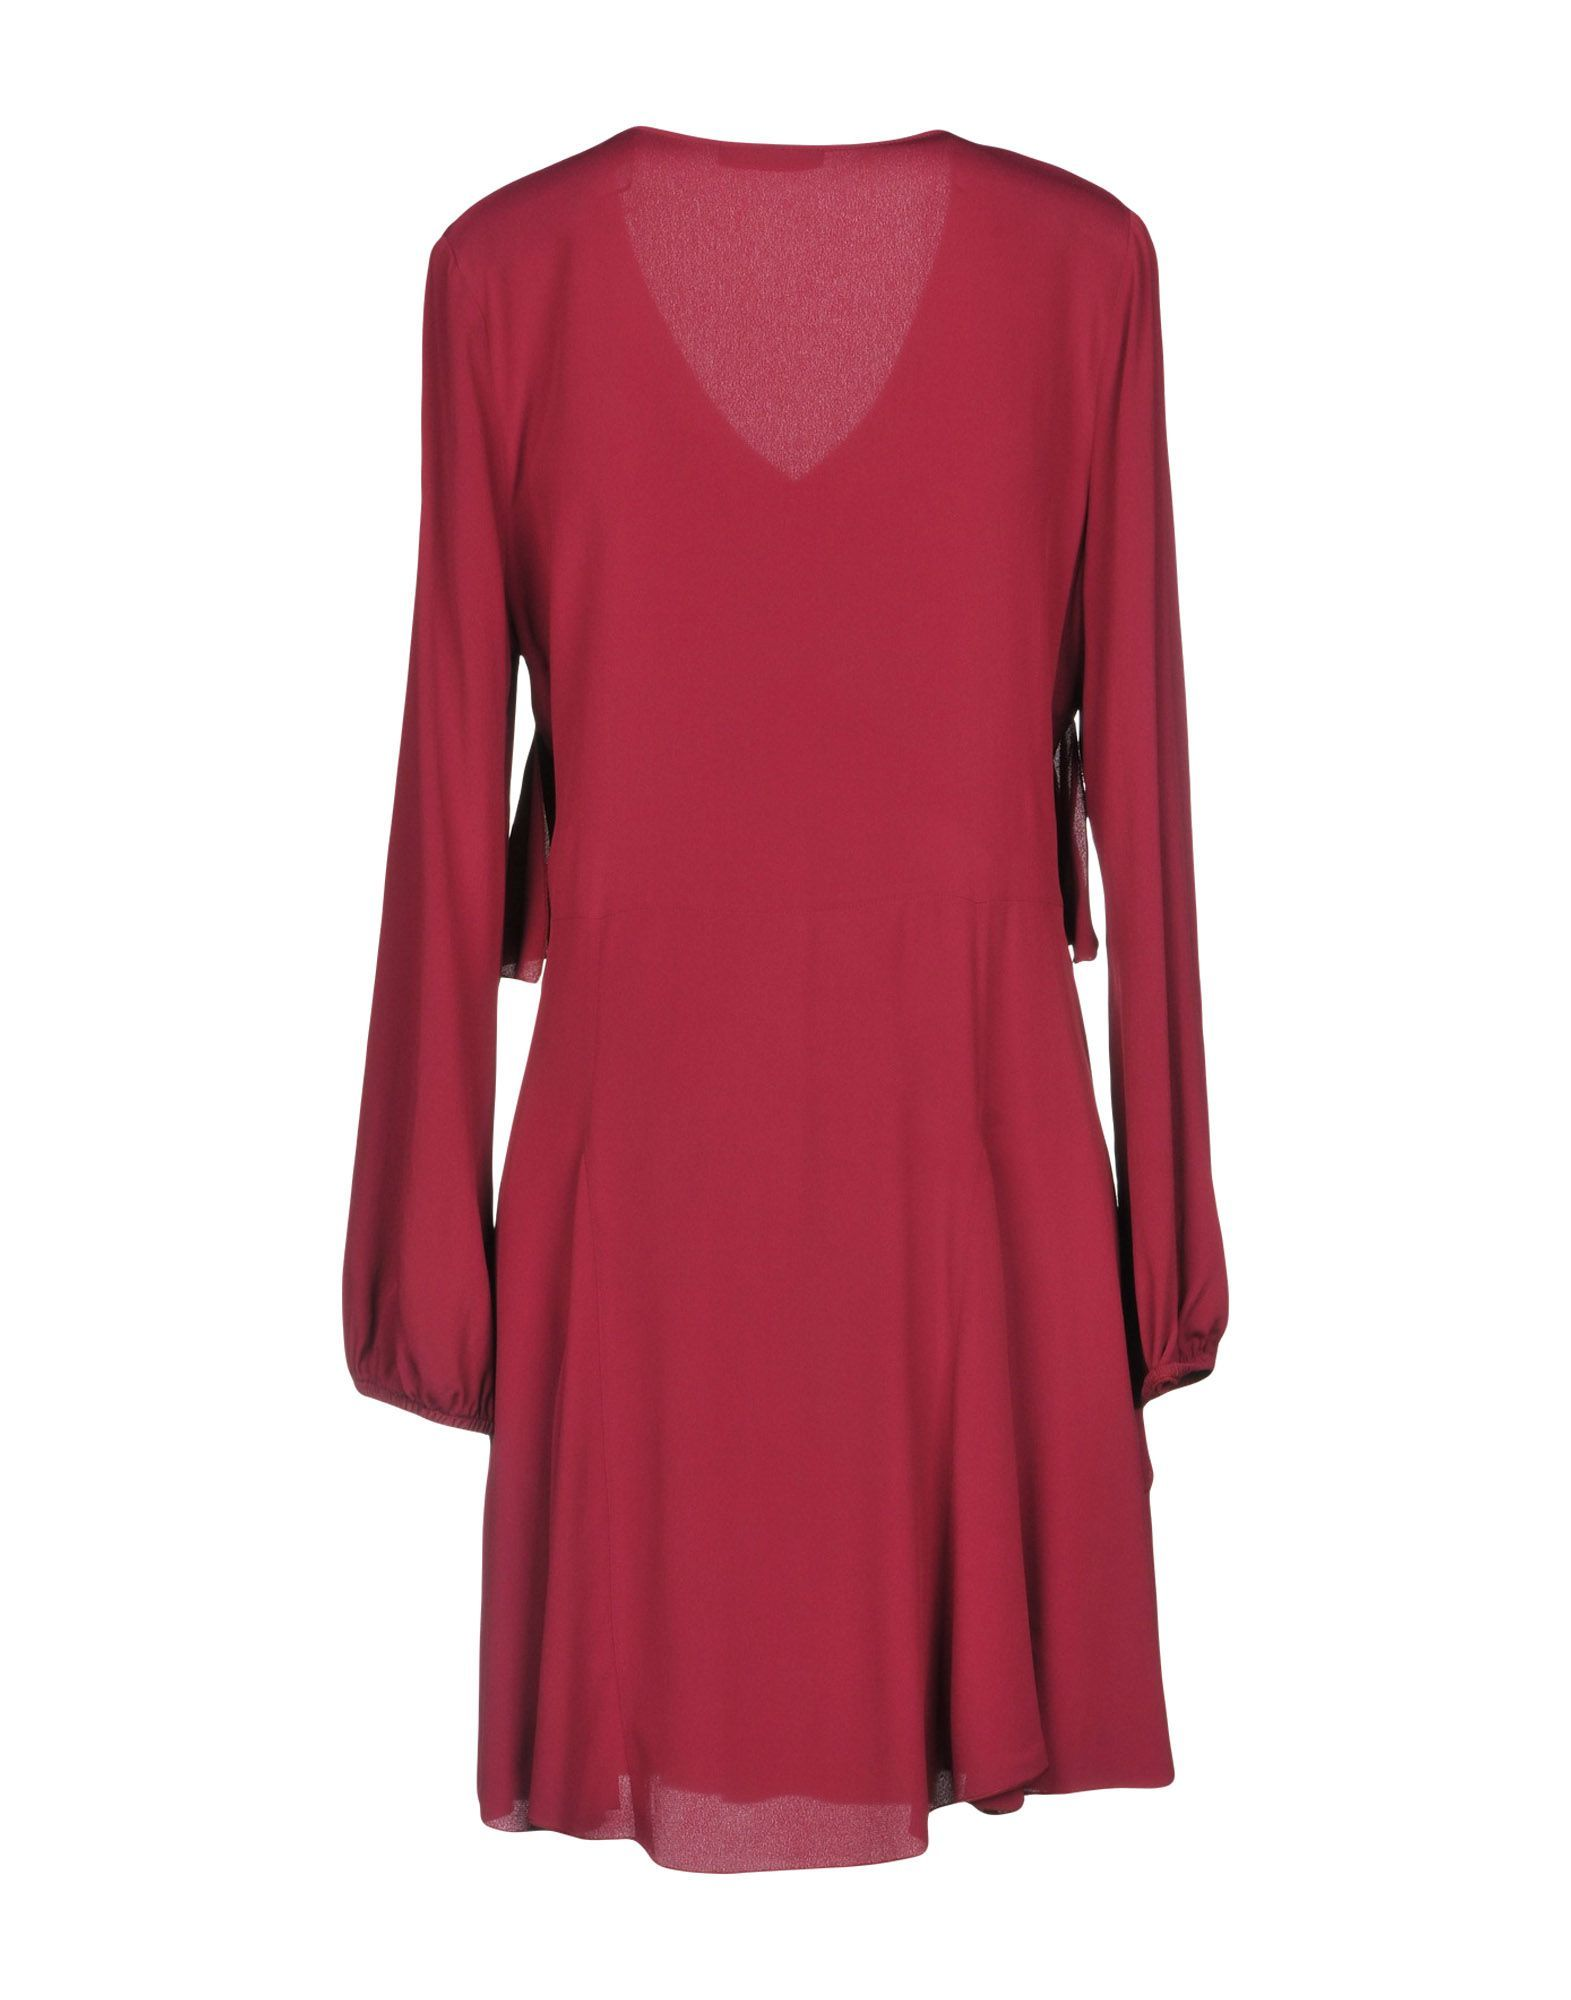 DRESSES Carla G. Mauve Woman Acetate